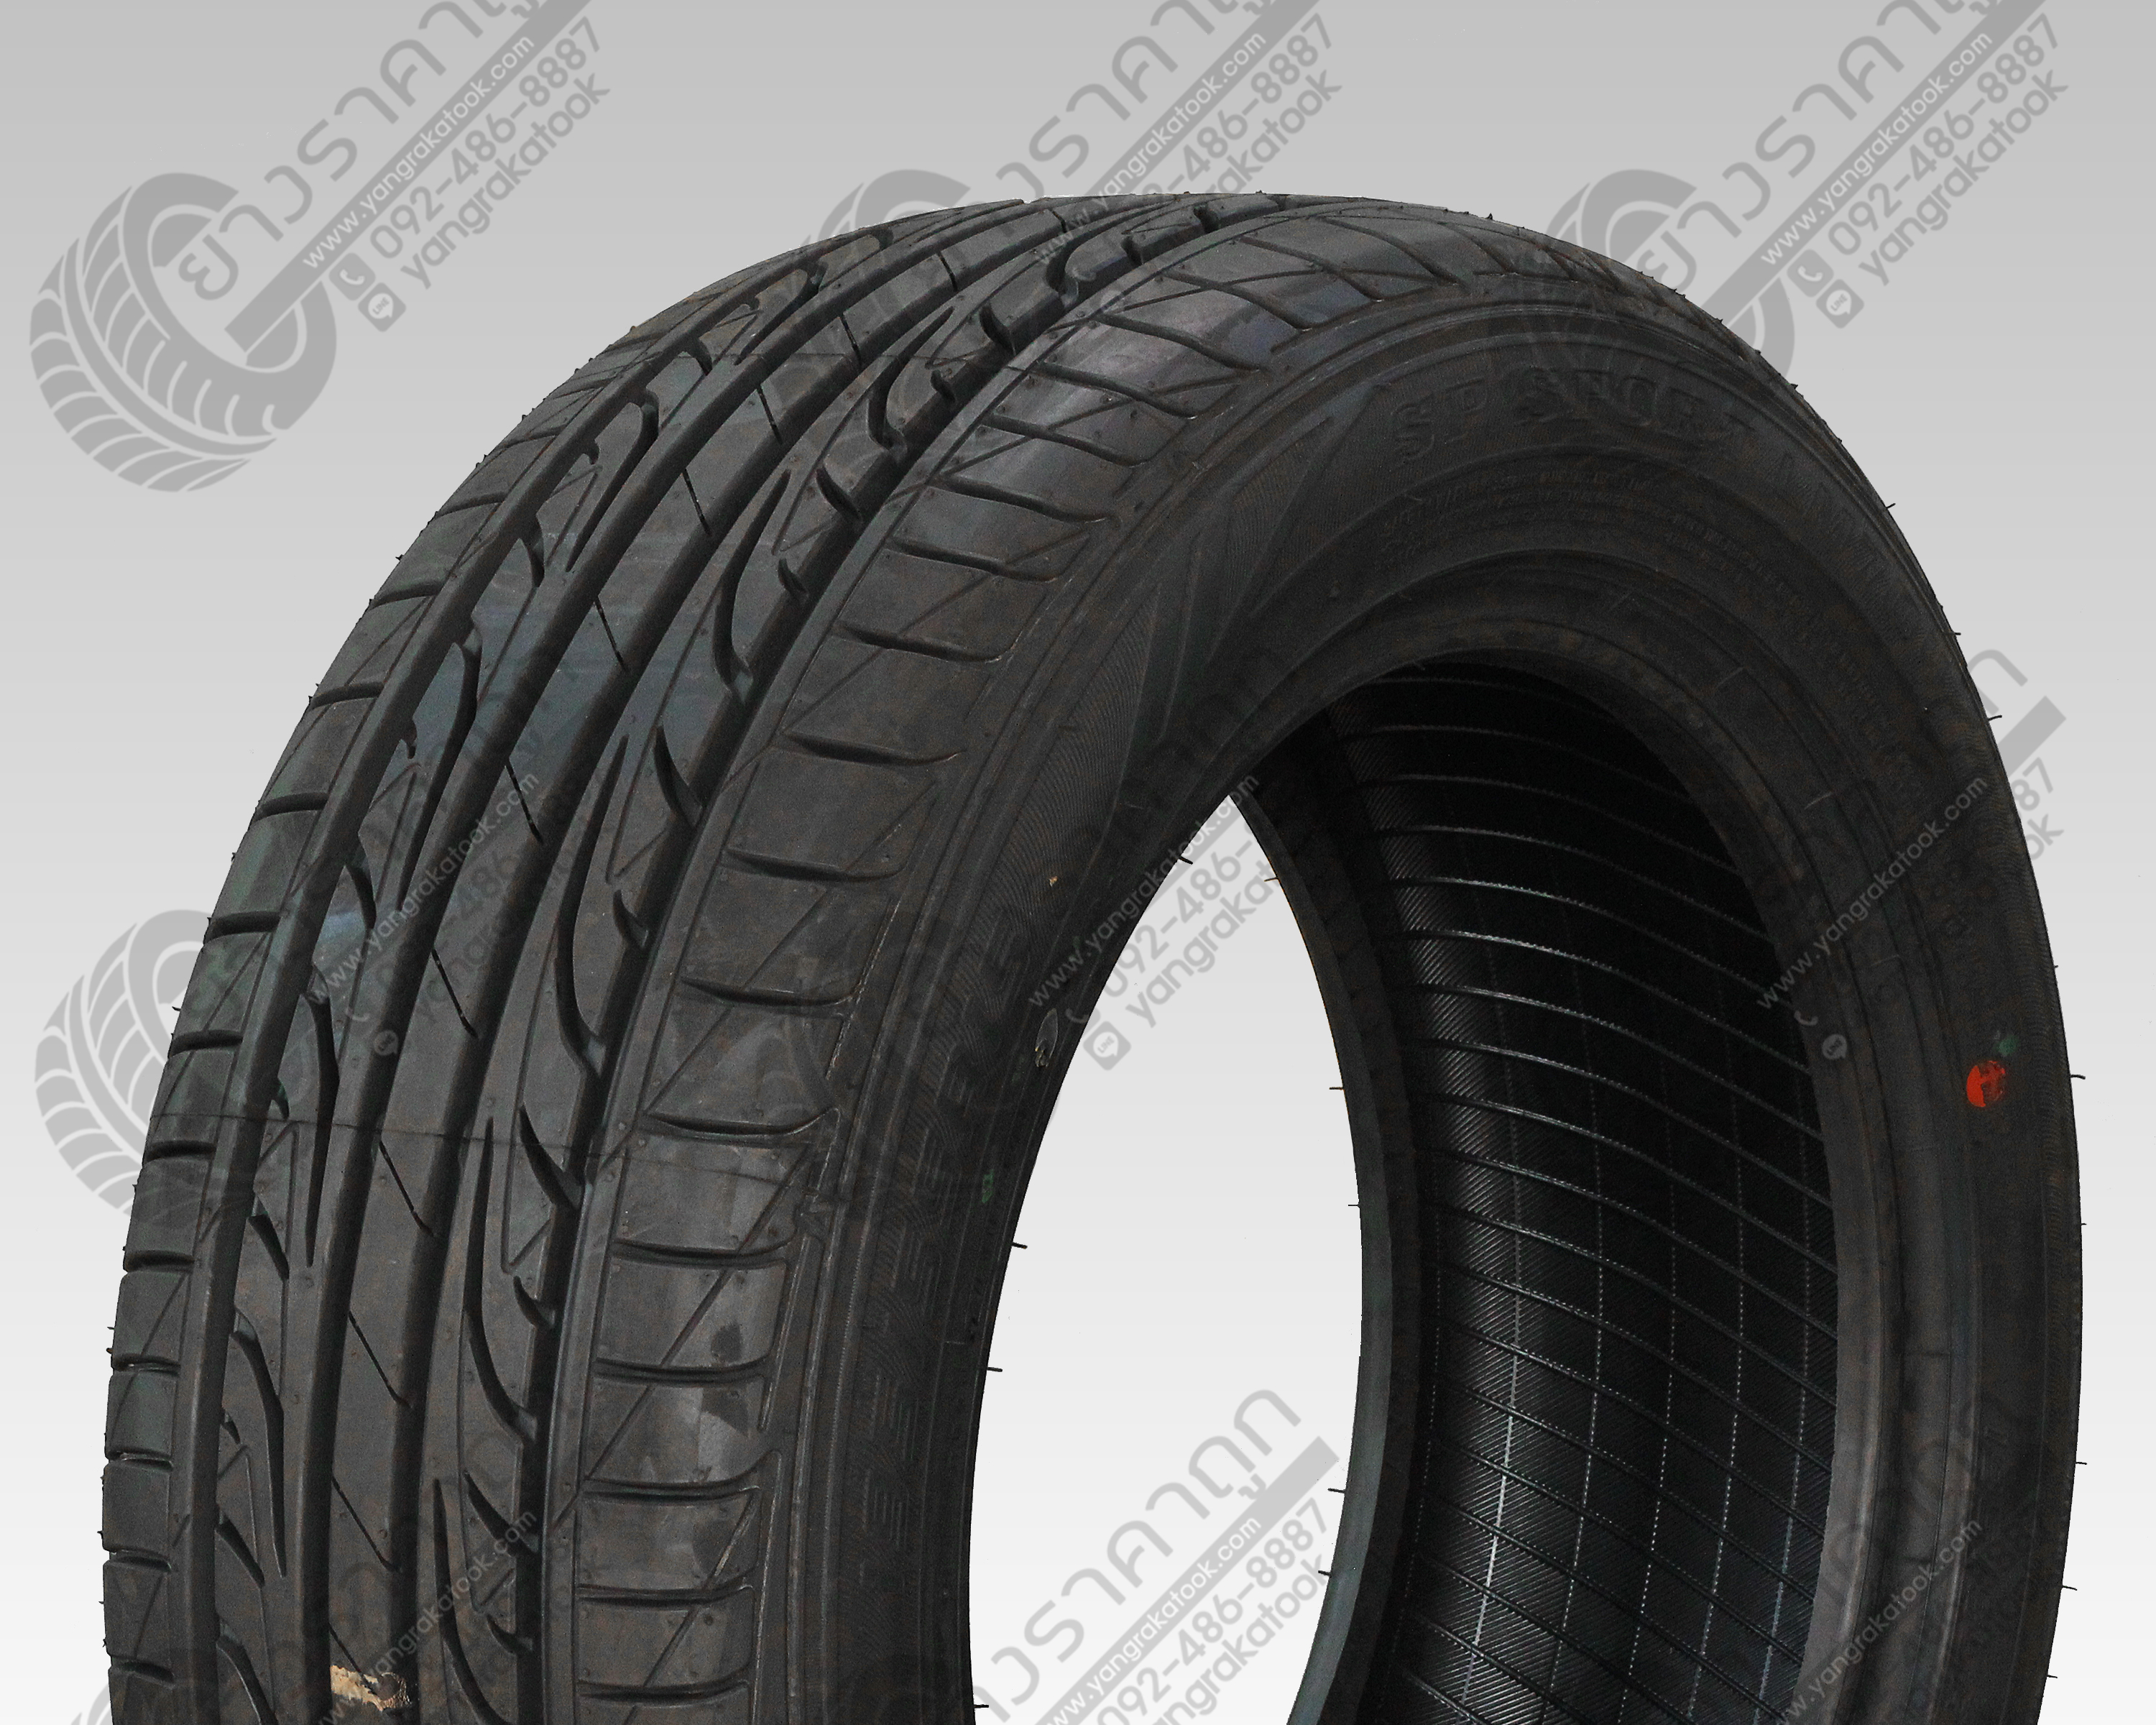 Dunlop LM704 205/45R17 ปี16